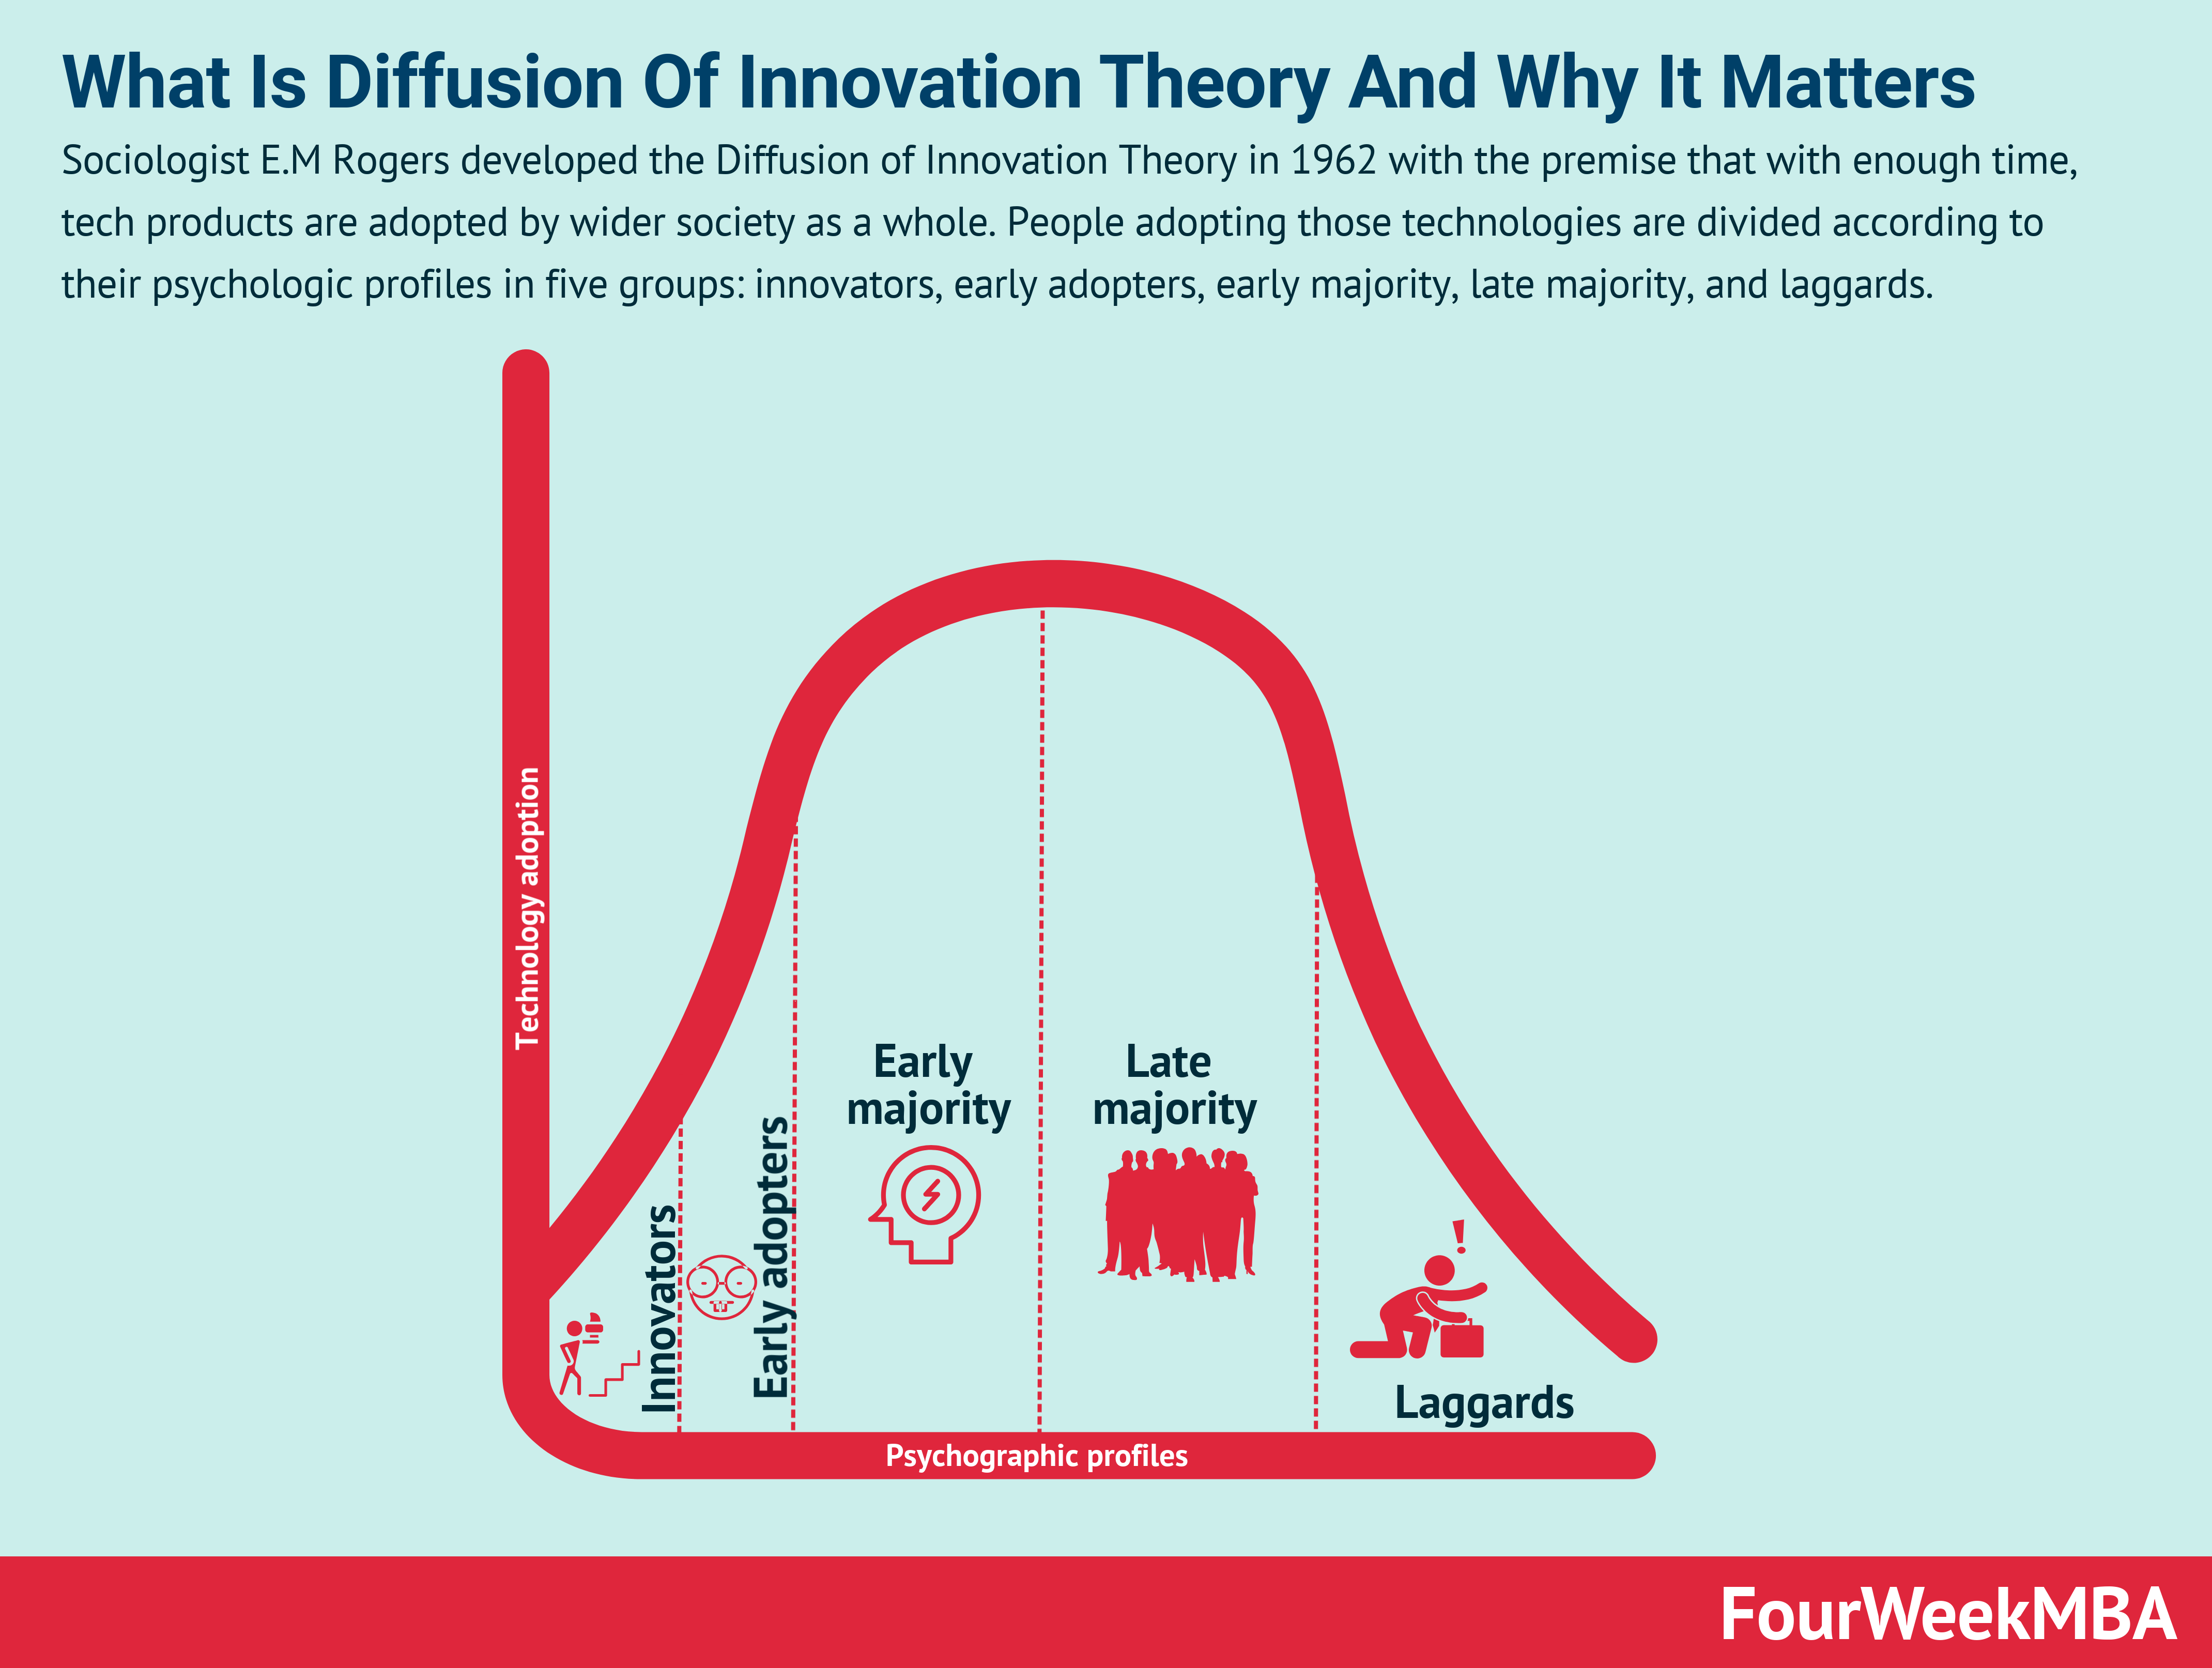 Diffusion Of Innovation Theory And Why It Matters